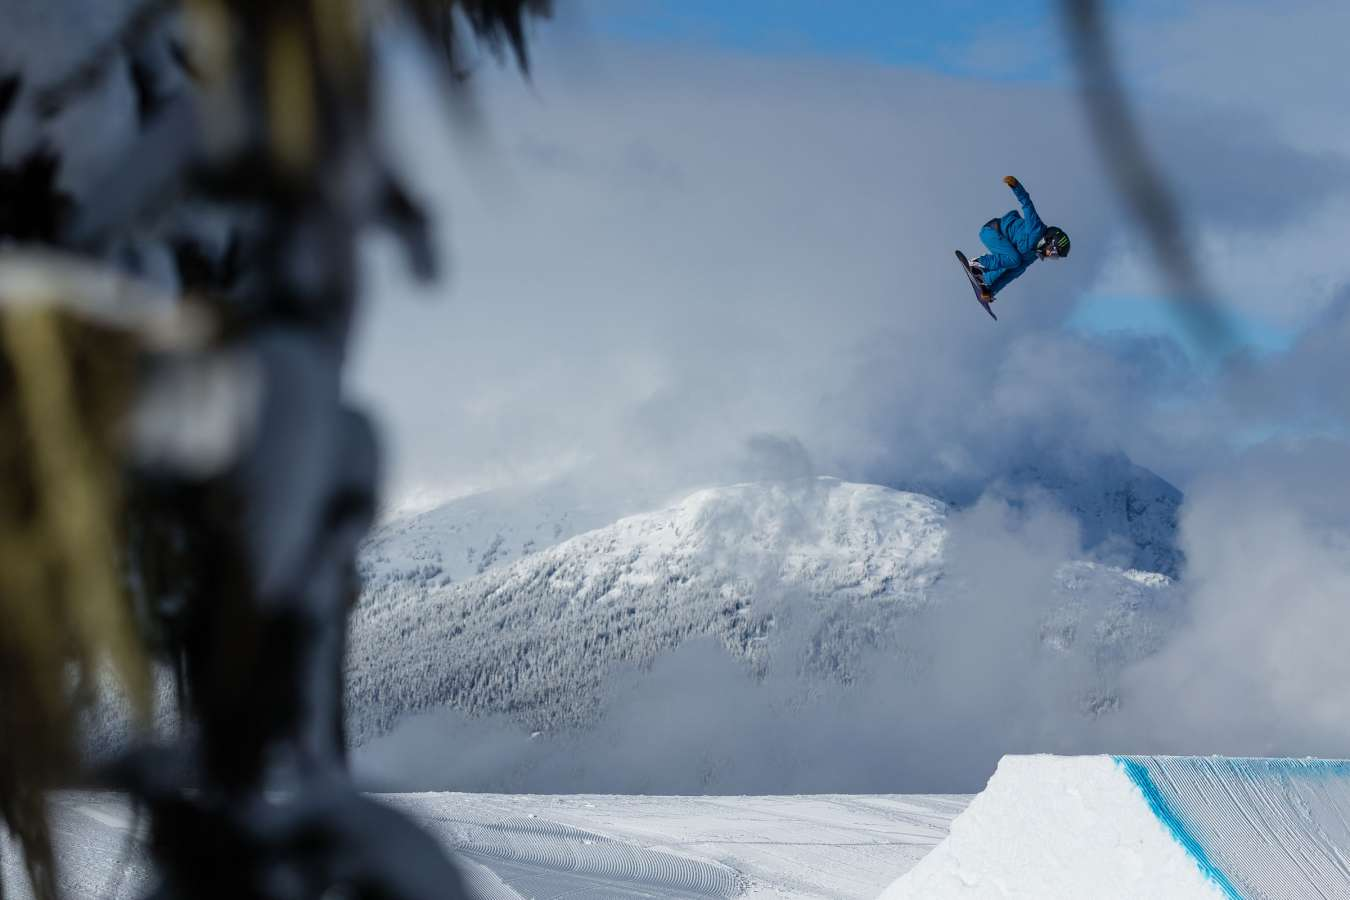 Olympic Training at Whistler Terrain Park, BC. Snowboarding, Slopestyle, whistler blackcomb, Jamie Anderson